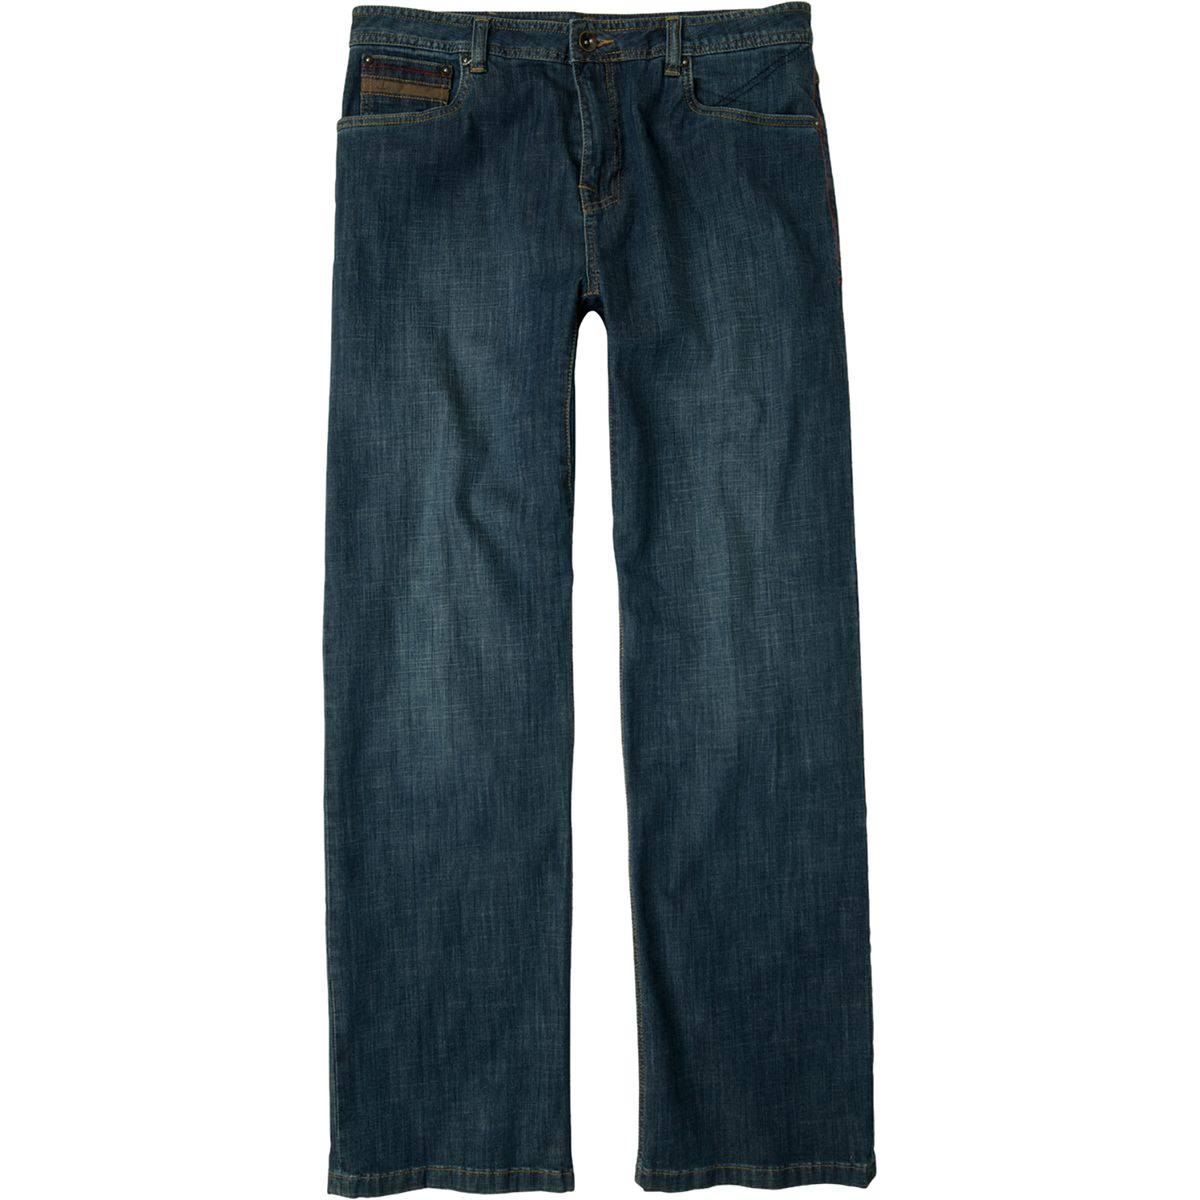 prAna Men's Axiom Jean 32 in. Inseam Antique Stone Wash 38